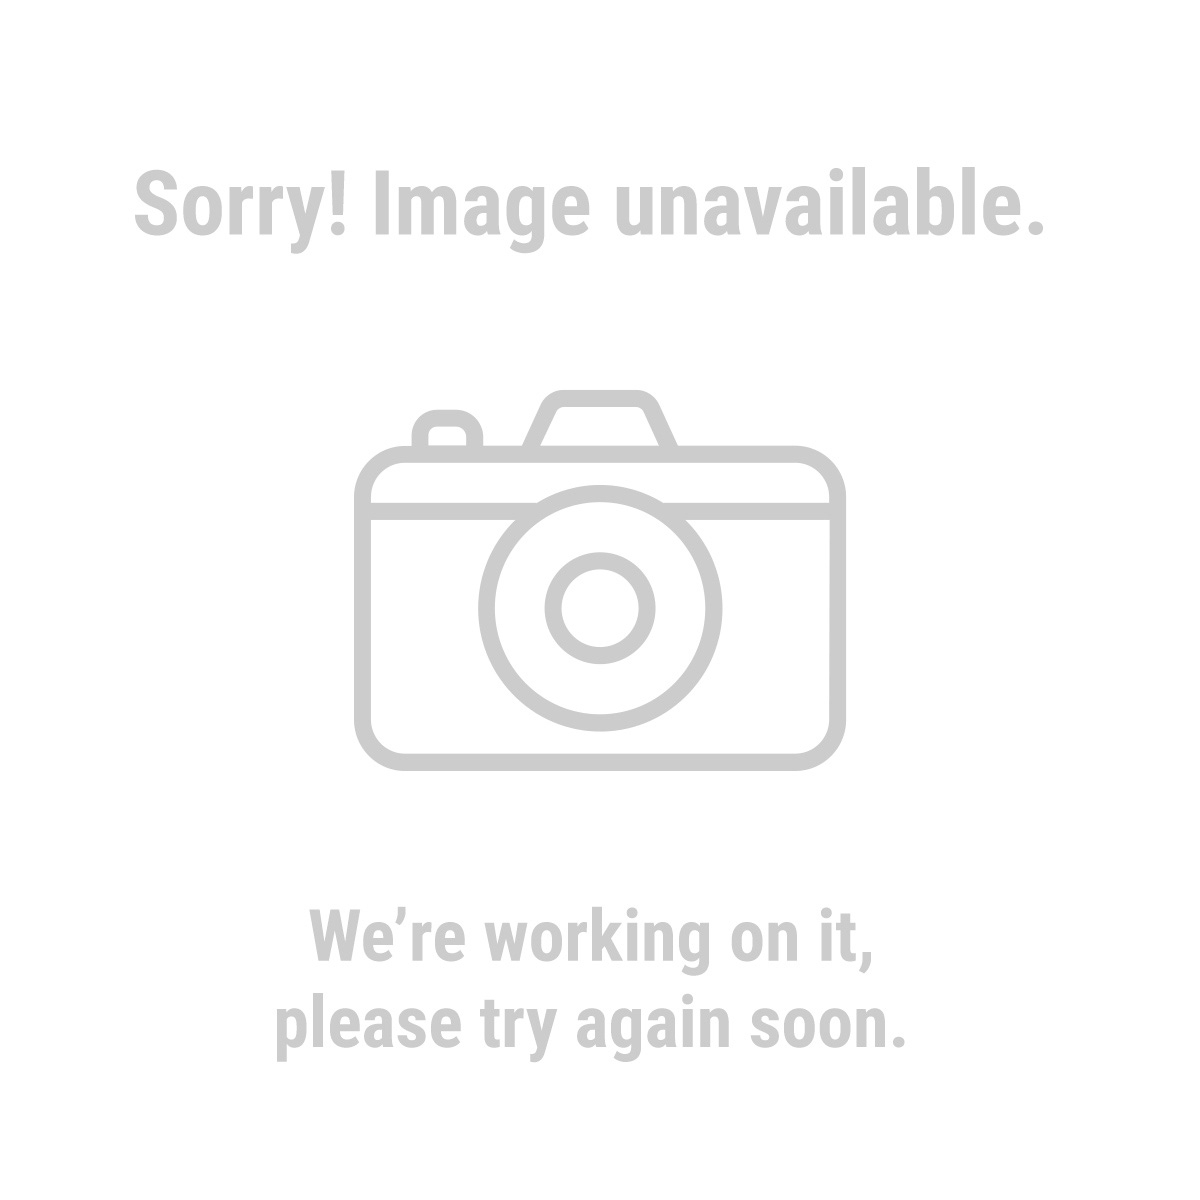 Haul Master Automotive 69688 500 Lb. Aluminum Cargo Carrier